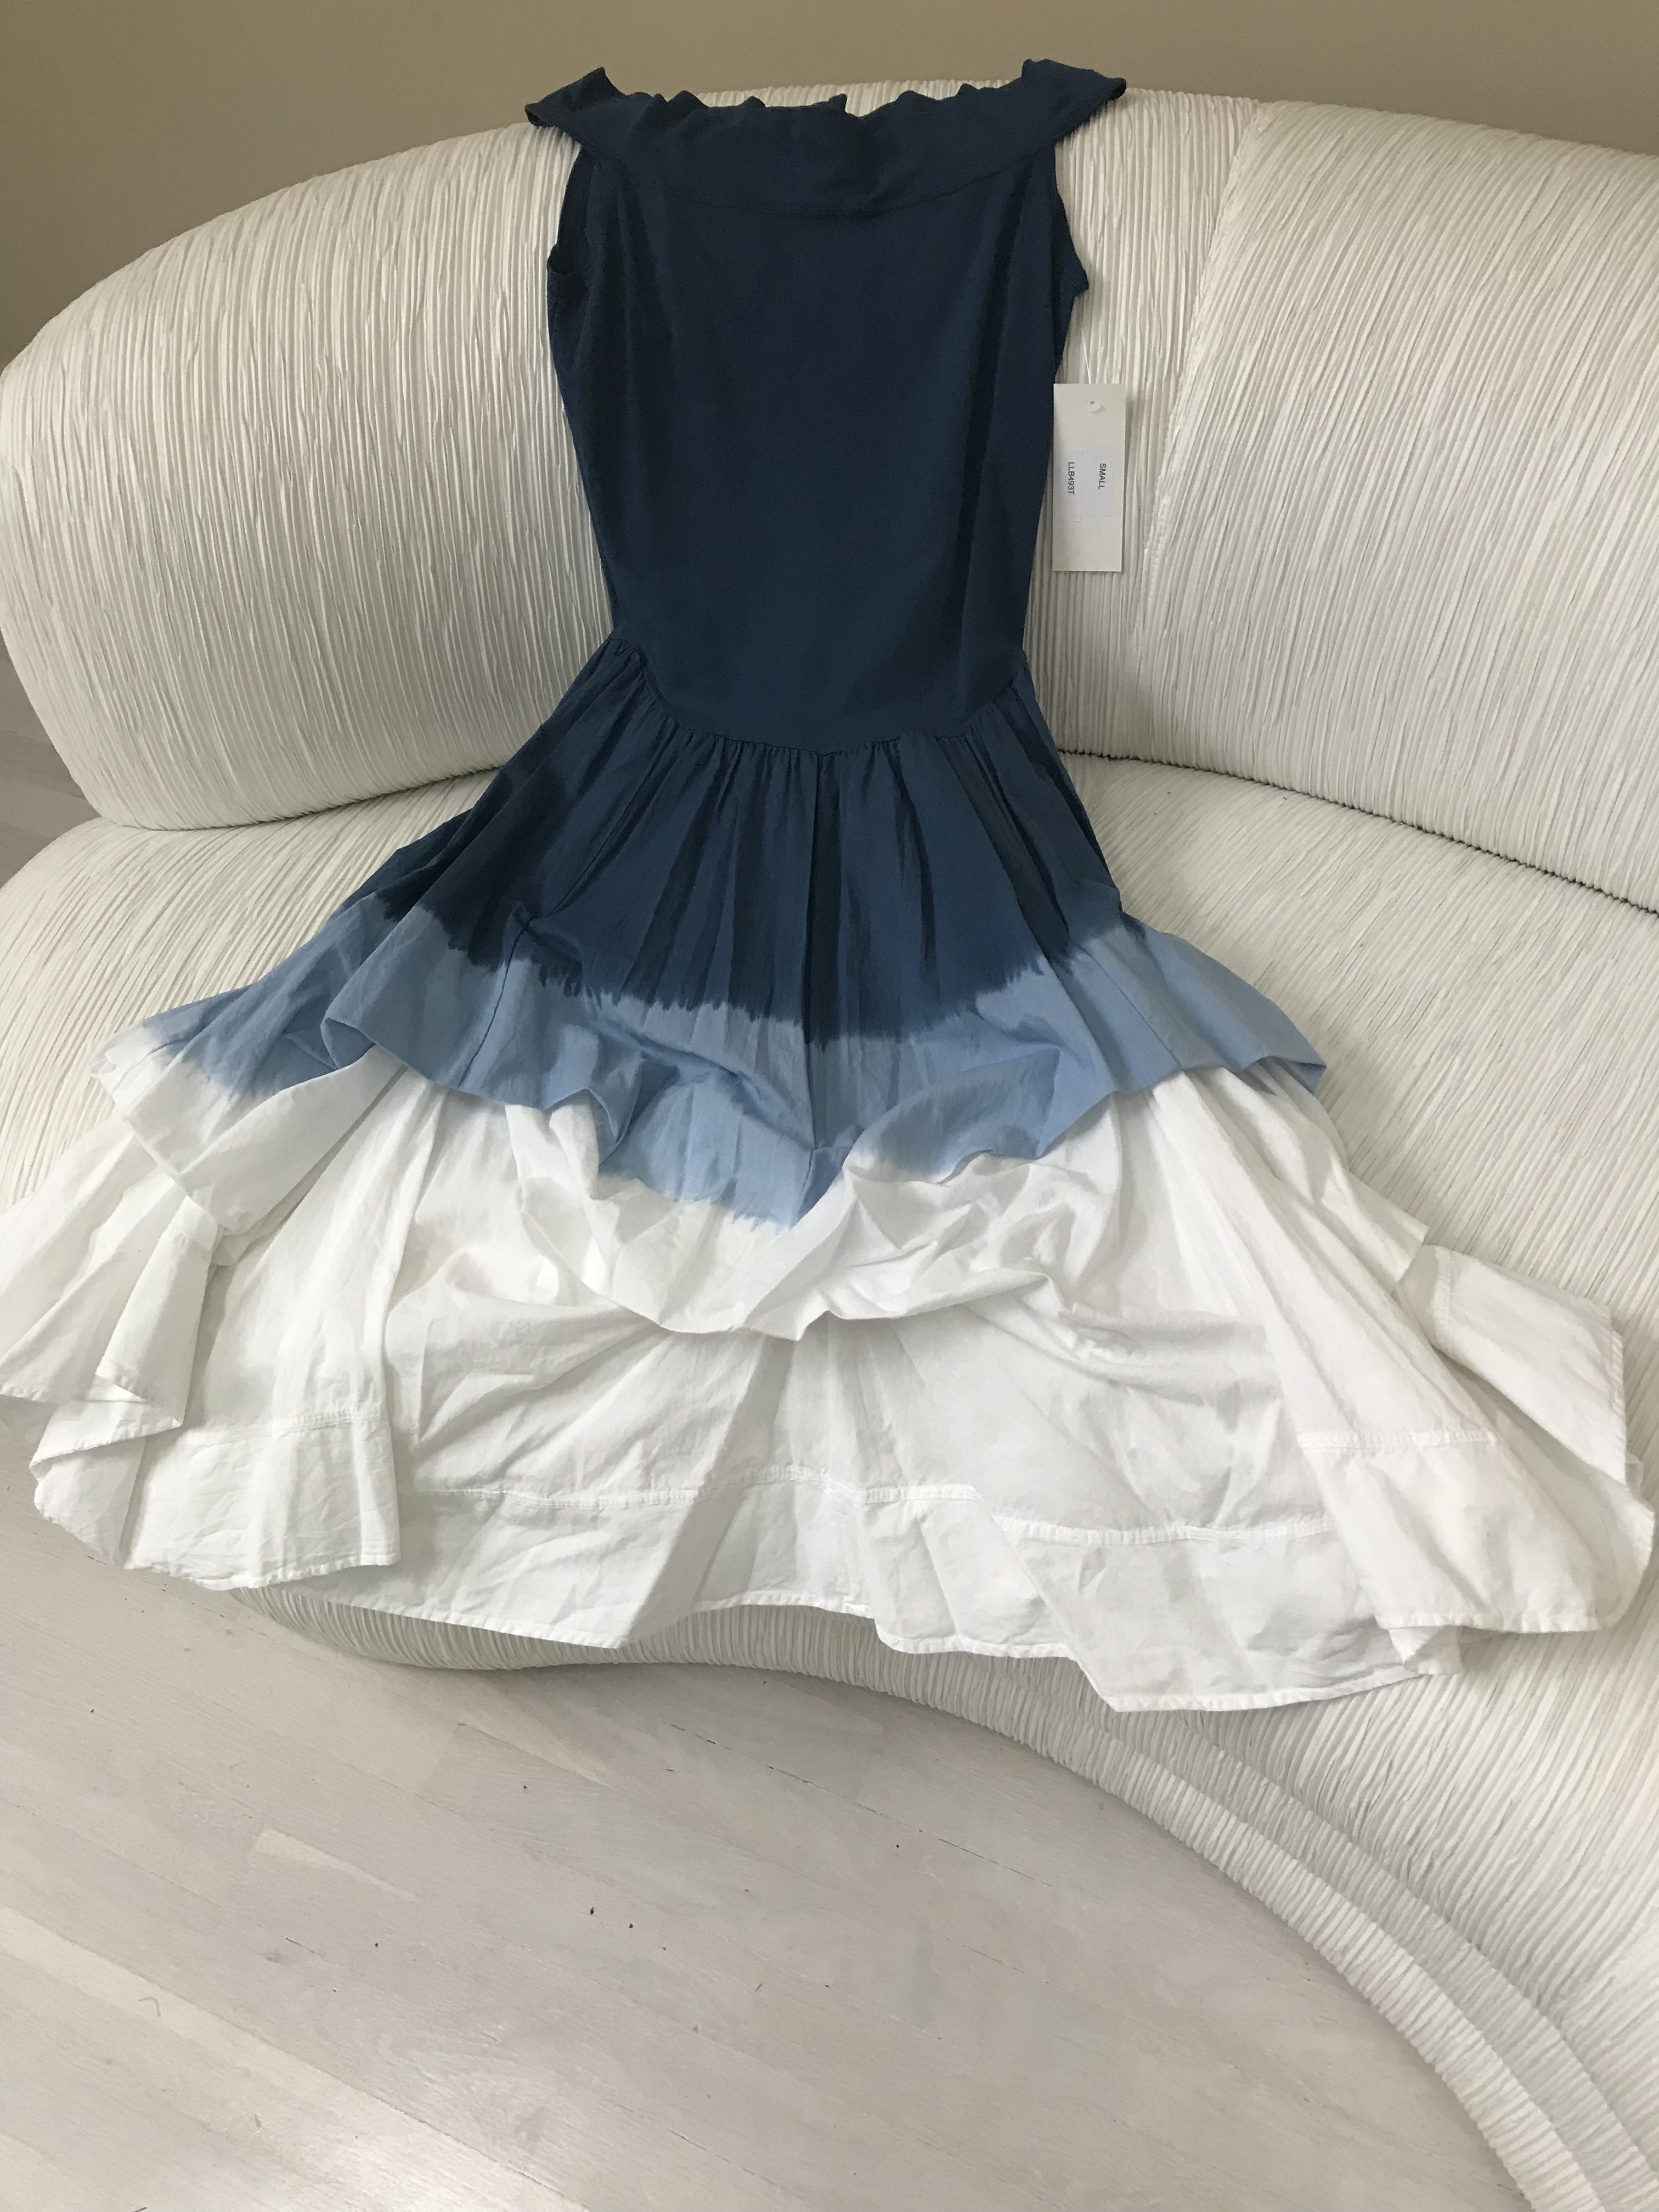 Luna Luz: Sleeveless Tied and Dyed Ombre Dress (Ships Immed in Navy Ombre, 1 Left!) LL_493T_NAVYOMBRE